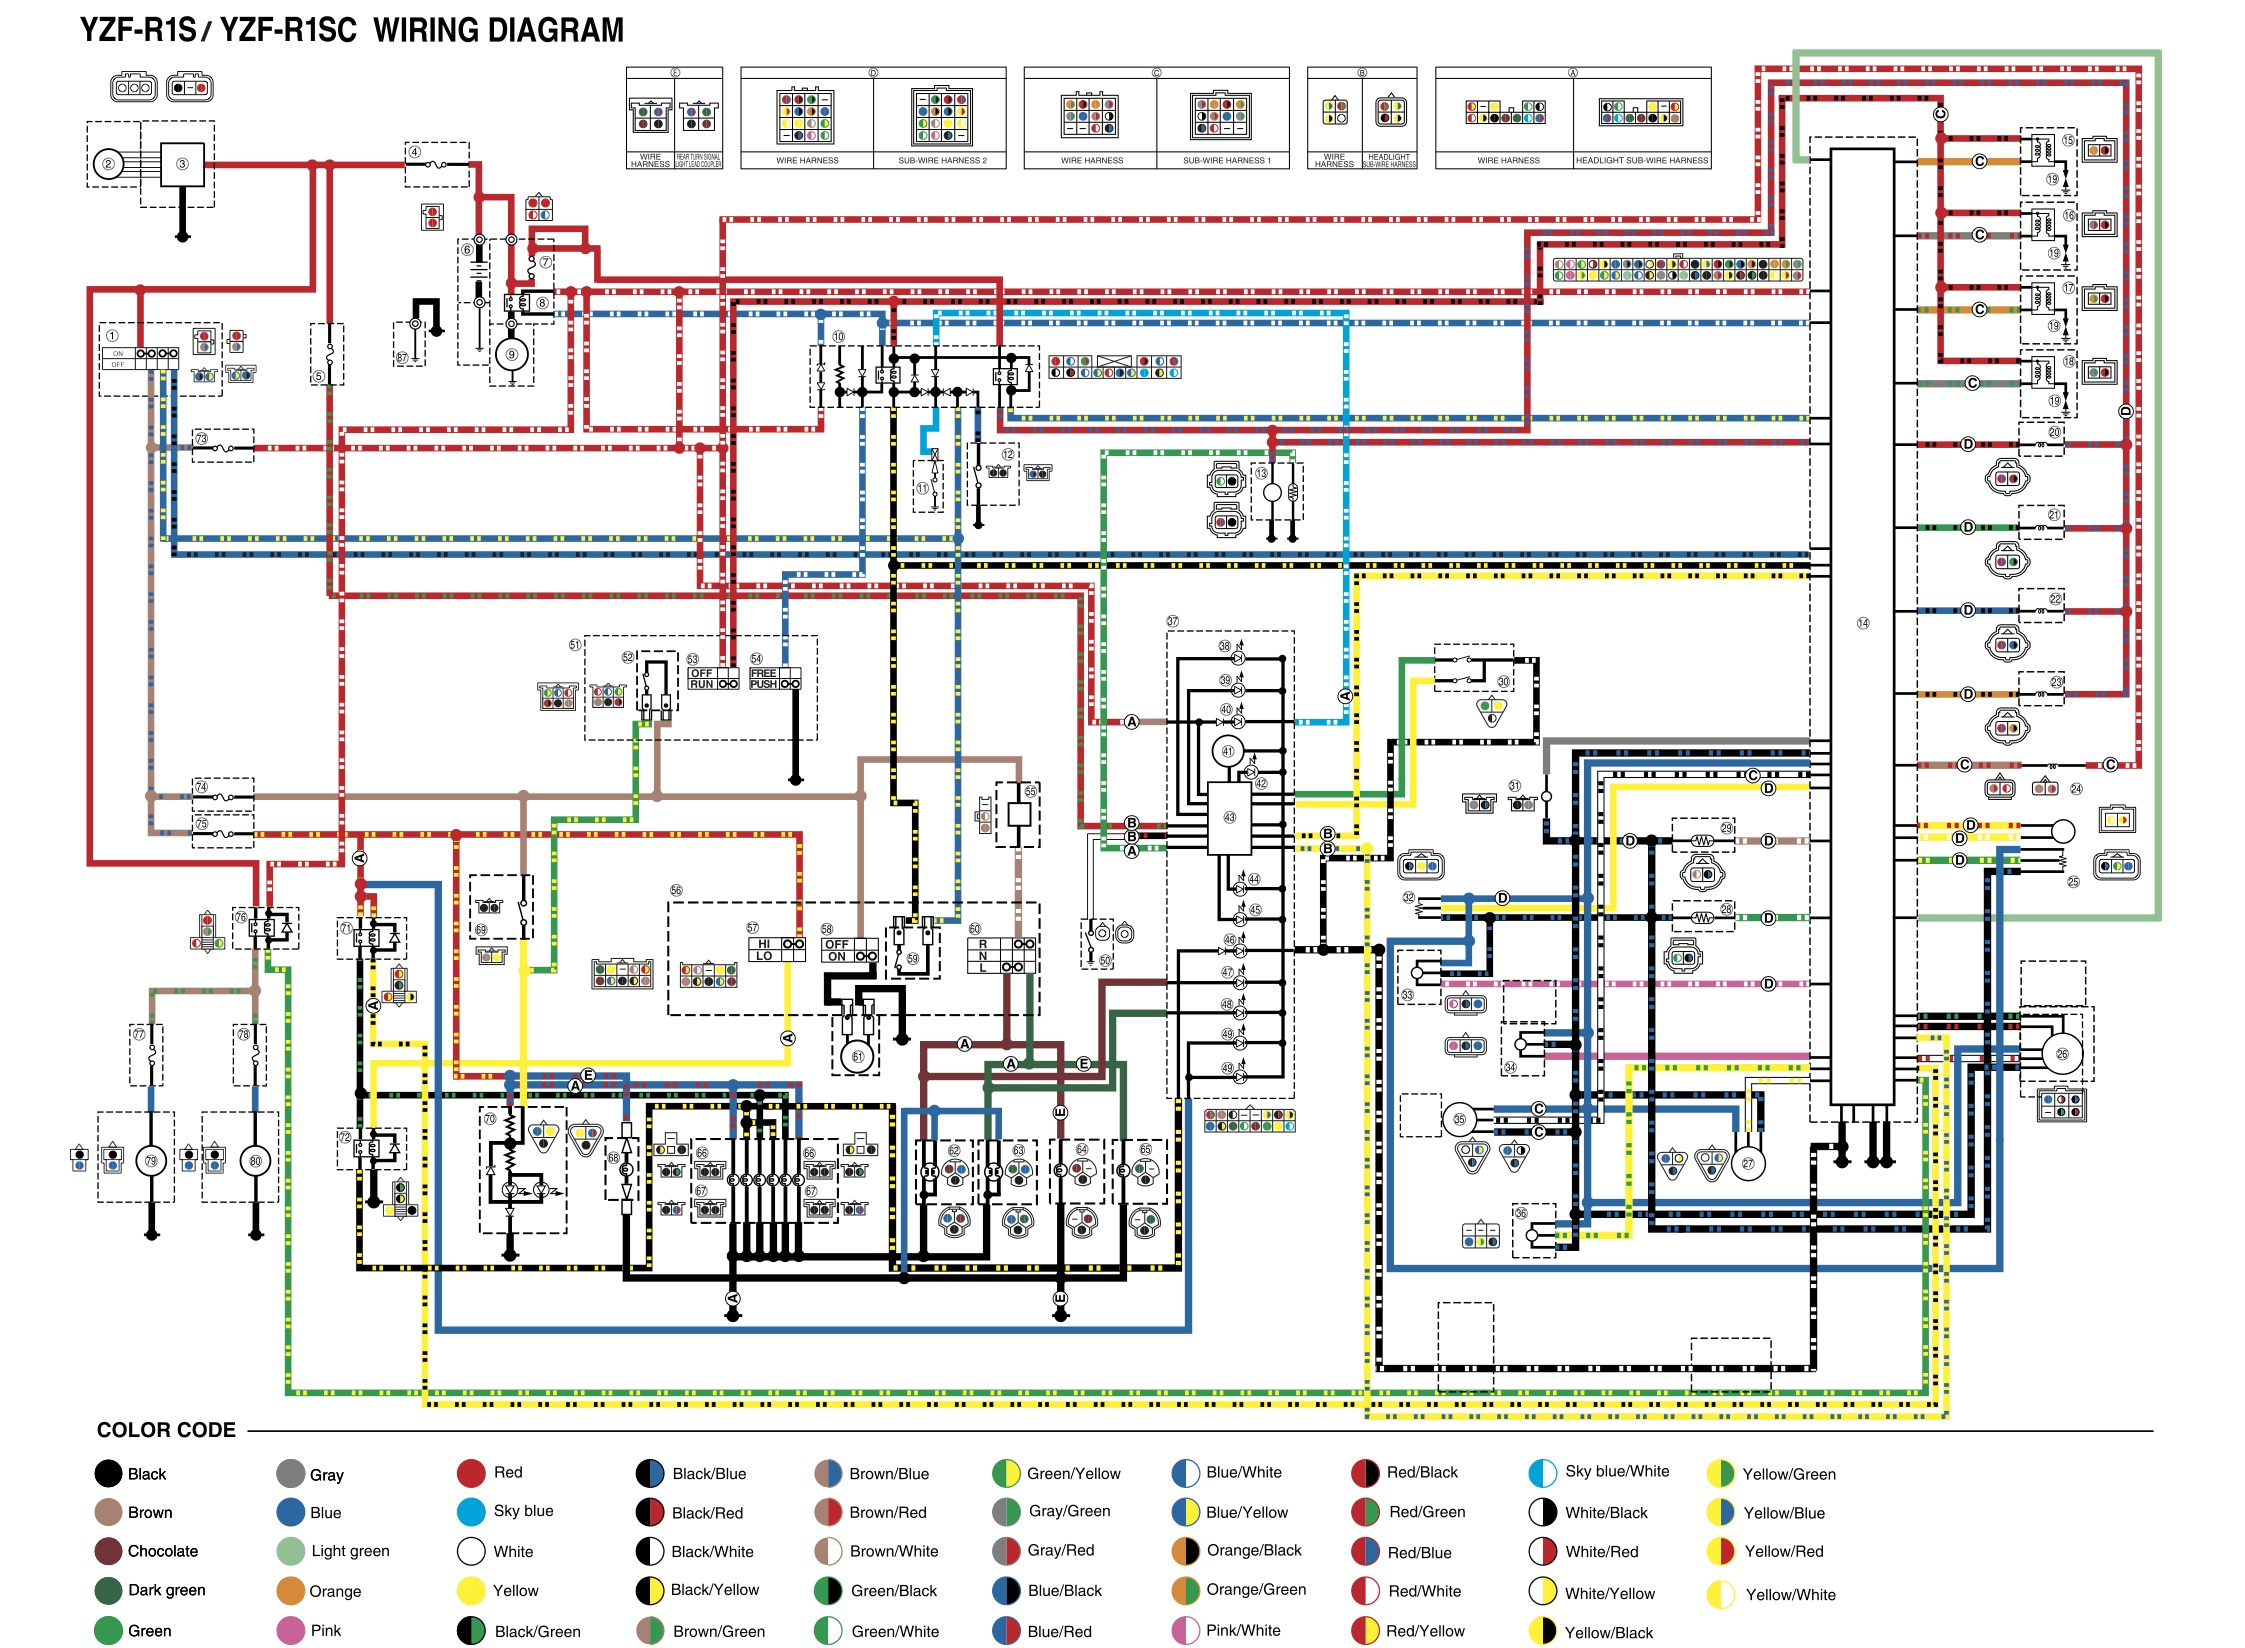 04R1_wiring_diagram r1 wiring help badlands ill-01 wiring diagram at gsmportal.co